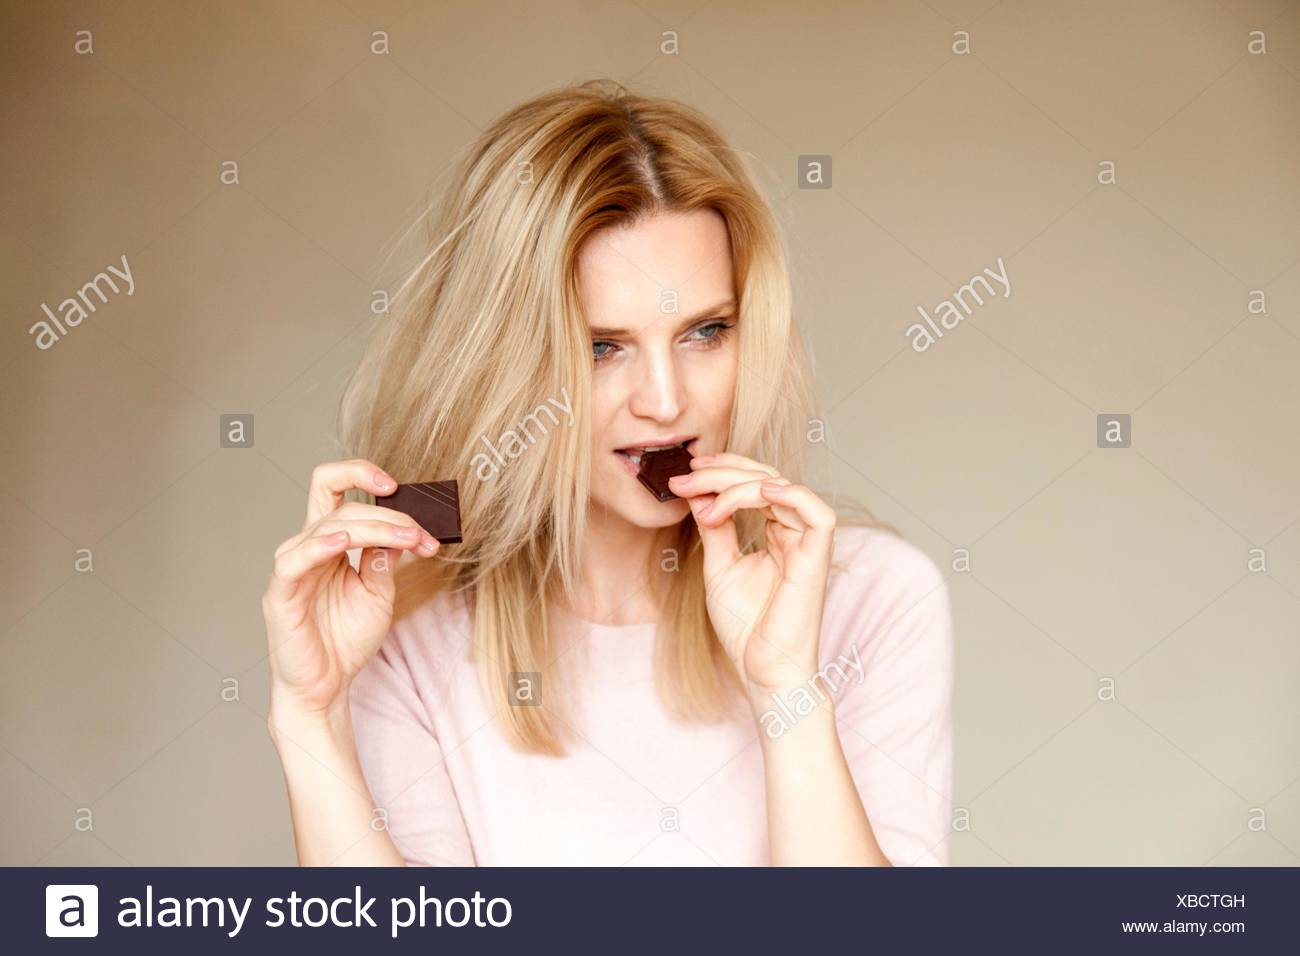 Portrait of beautiful woman with long blond hair eating chocolate bar - Stock Image